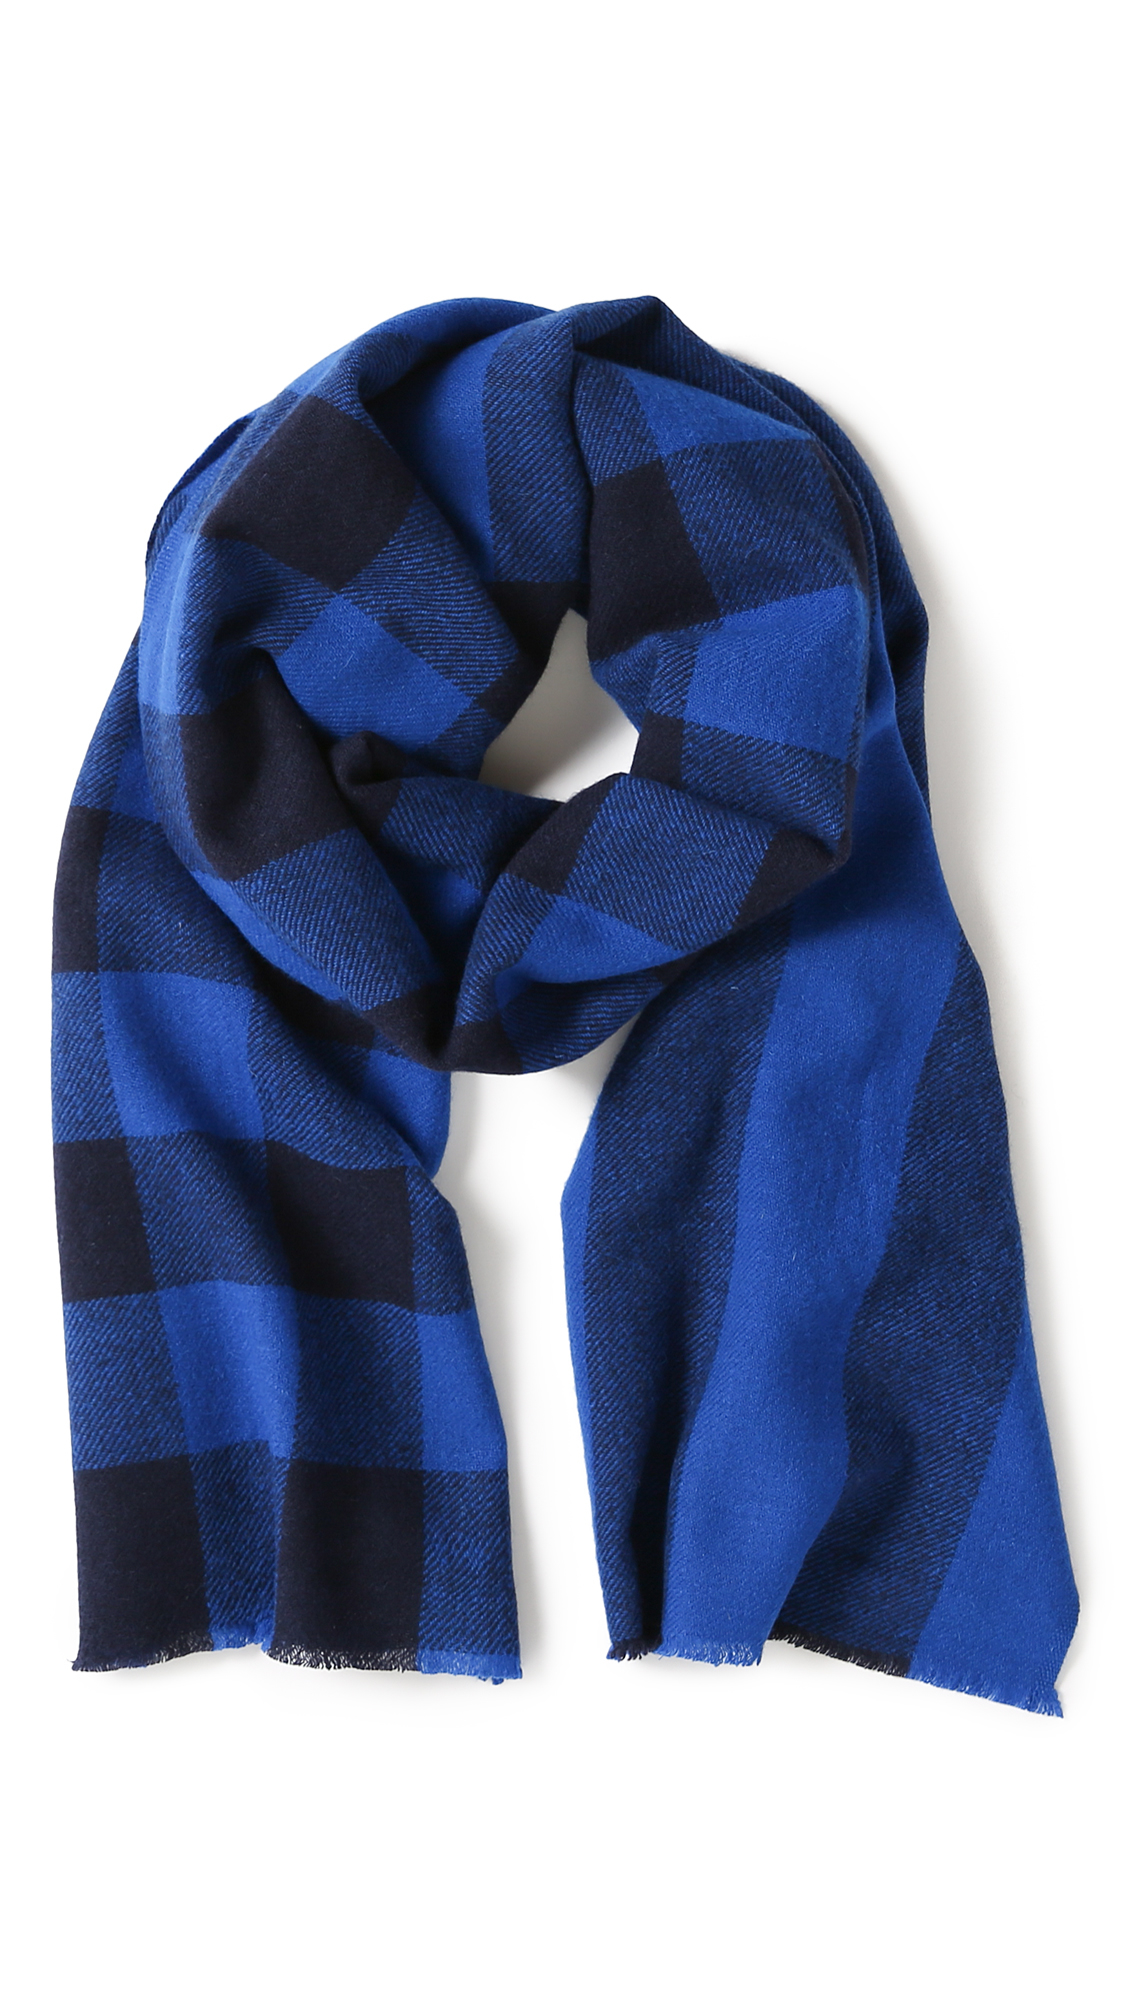 Marc by marc jacobs Boiled Wool Plaid Scarf in Blue for ...